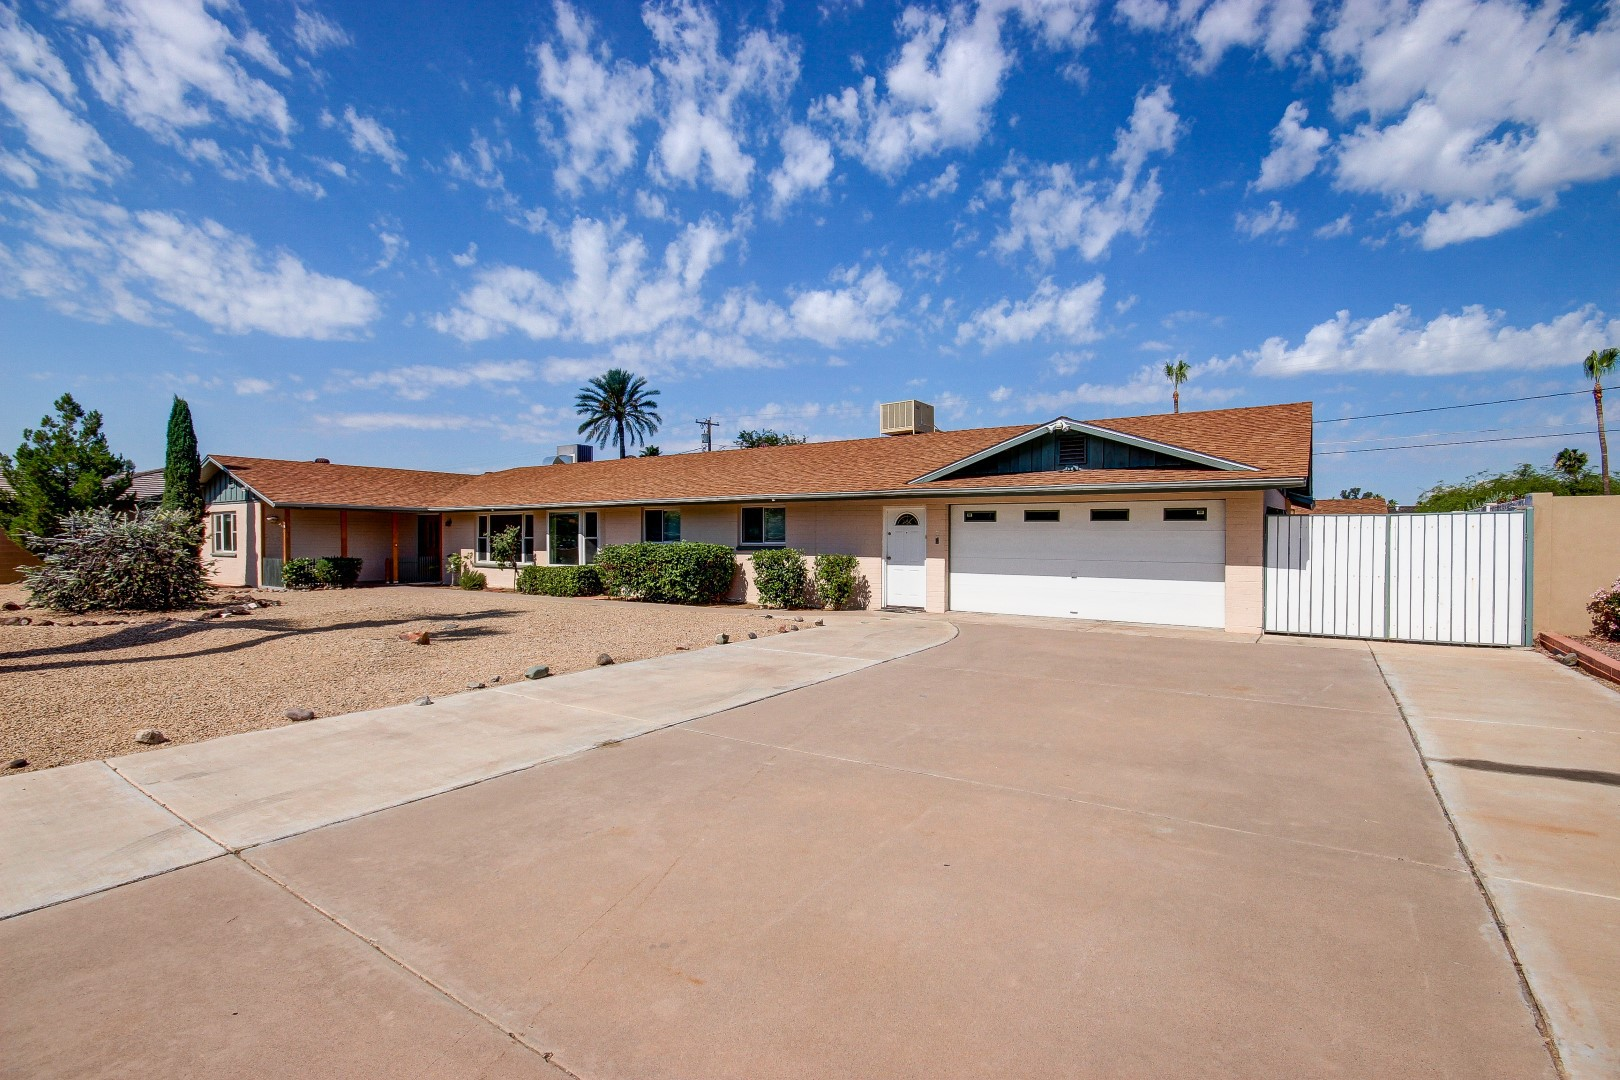 Amazing Camelback Mountain Views in highly coveted Arcadia area neighborhood